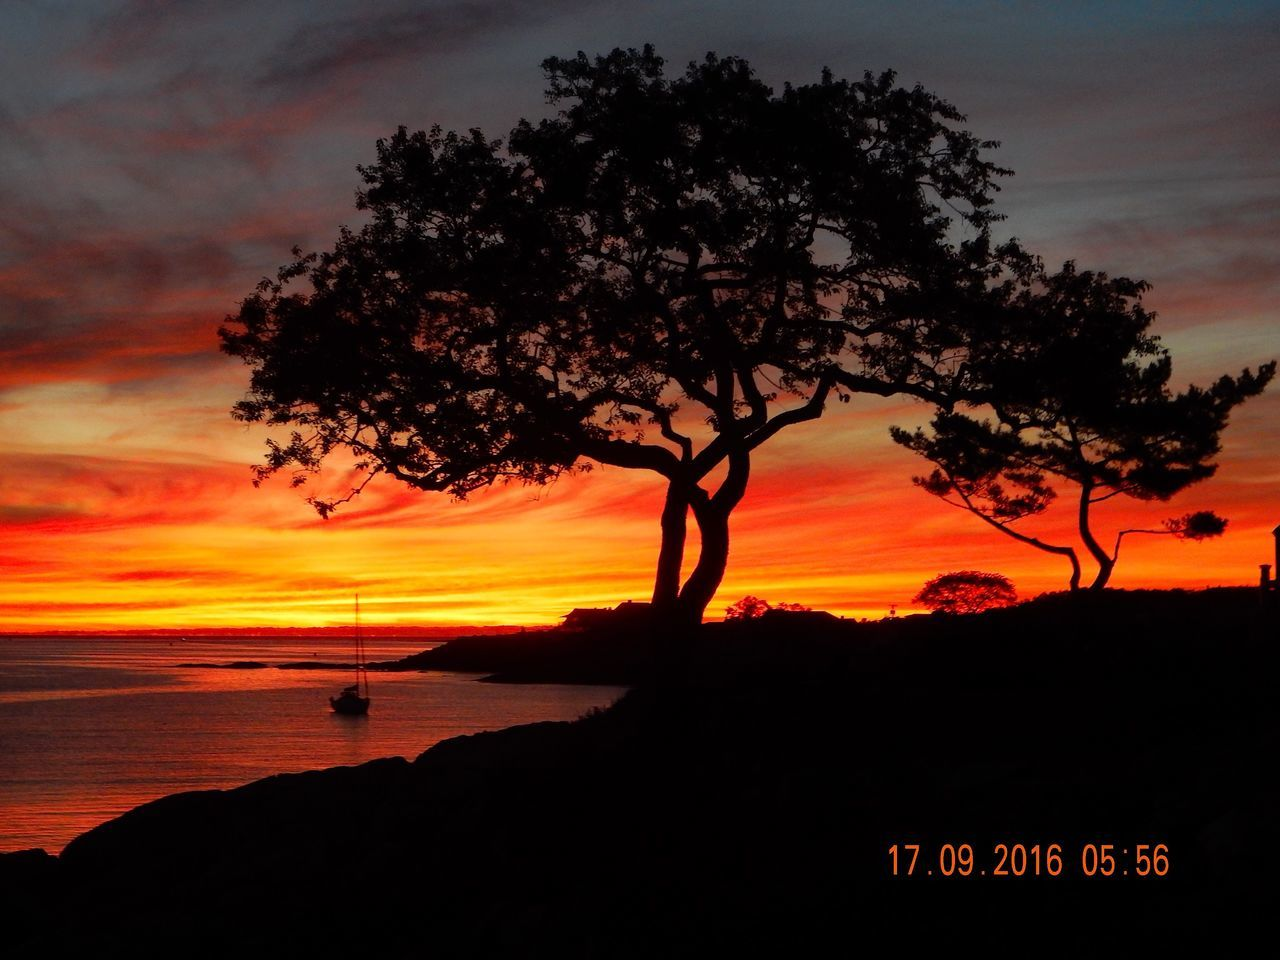 tree, sunset, silhouette, orange color, scenics, beauty in nature, nature, tranquility, sky, tranquil scene, outdoors, no people, sea, growth, tree trunk, landscape, day